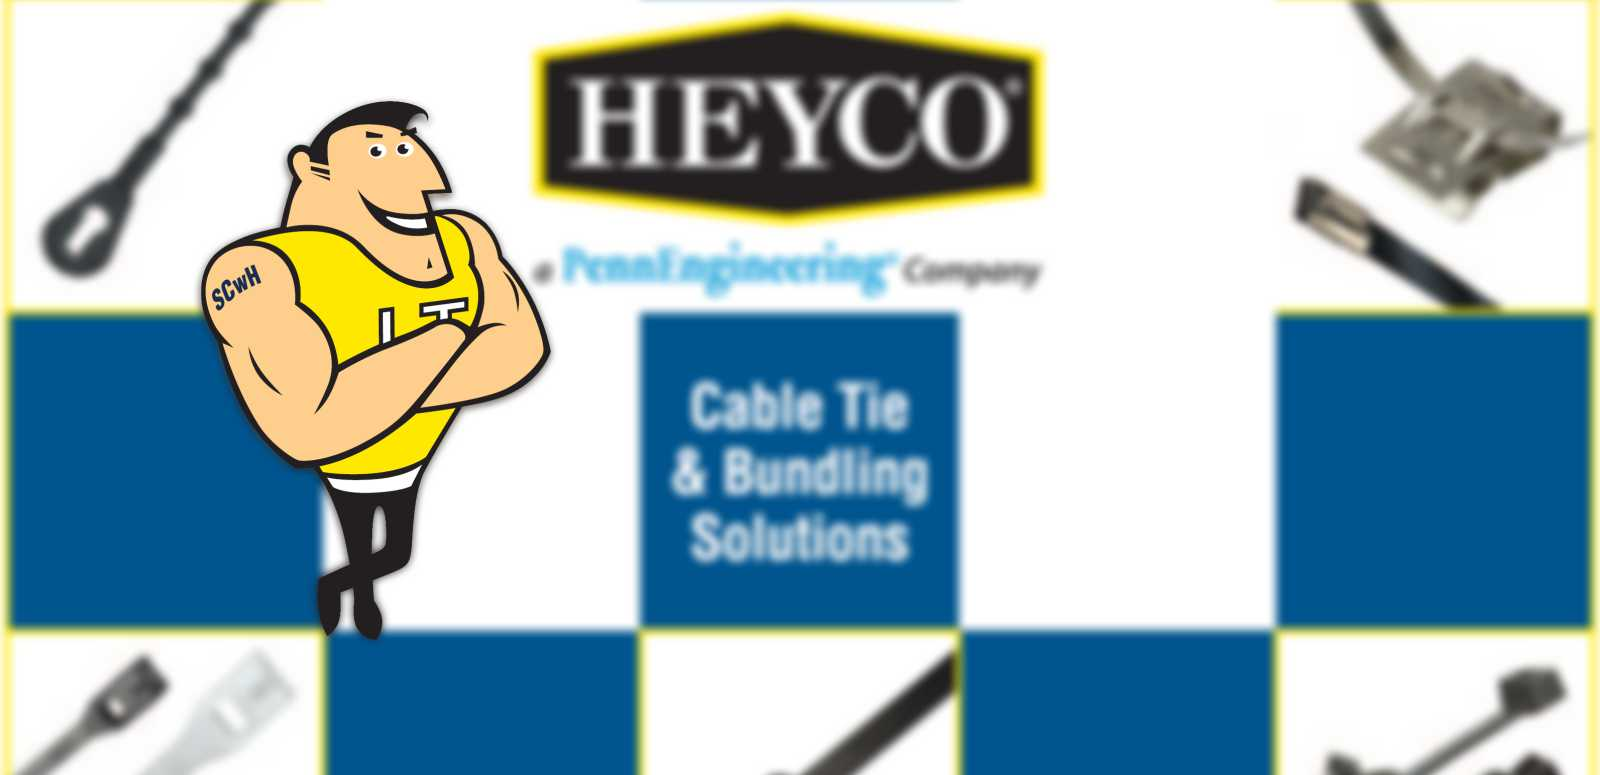 Heyco Cable Ties Background